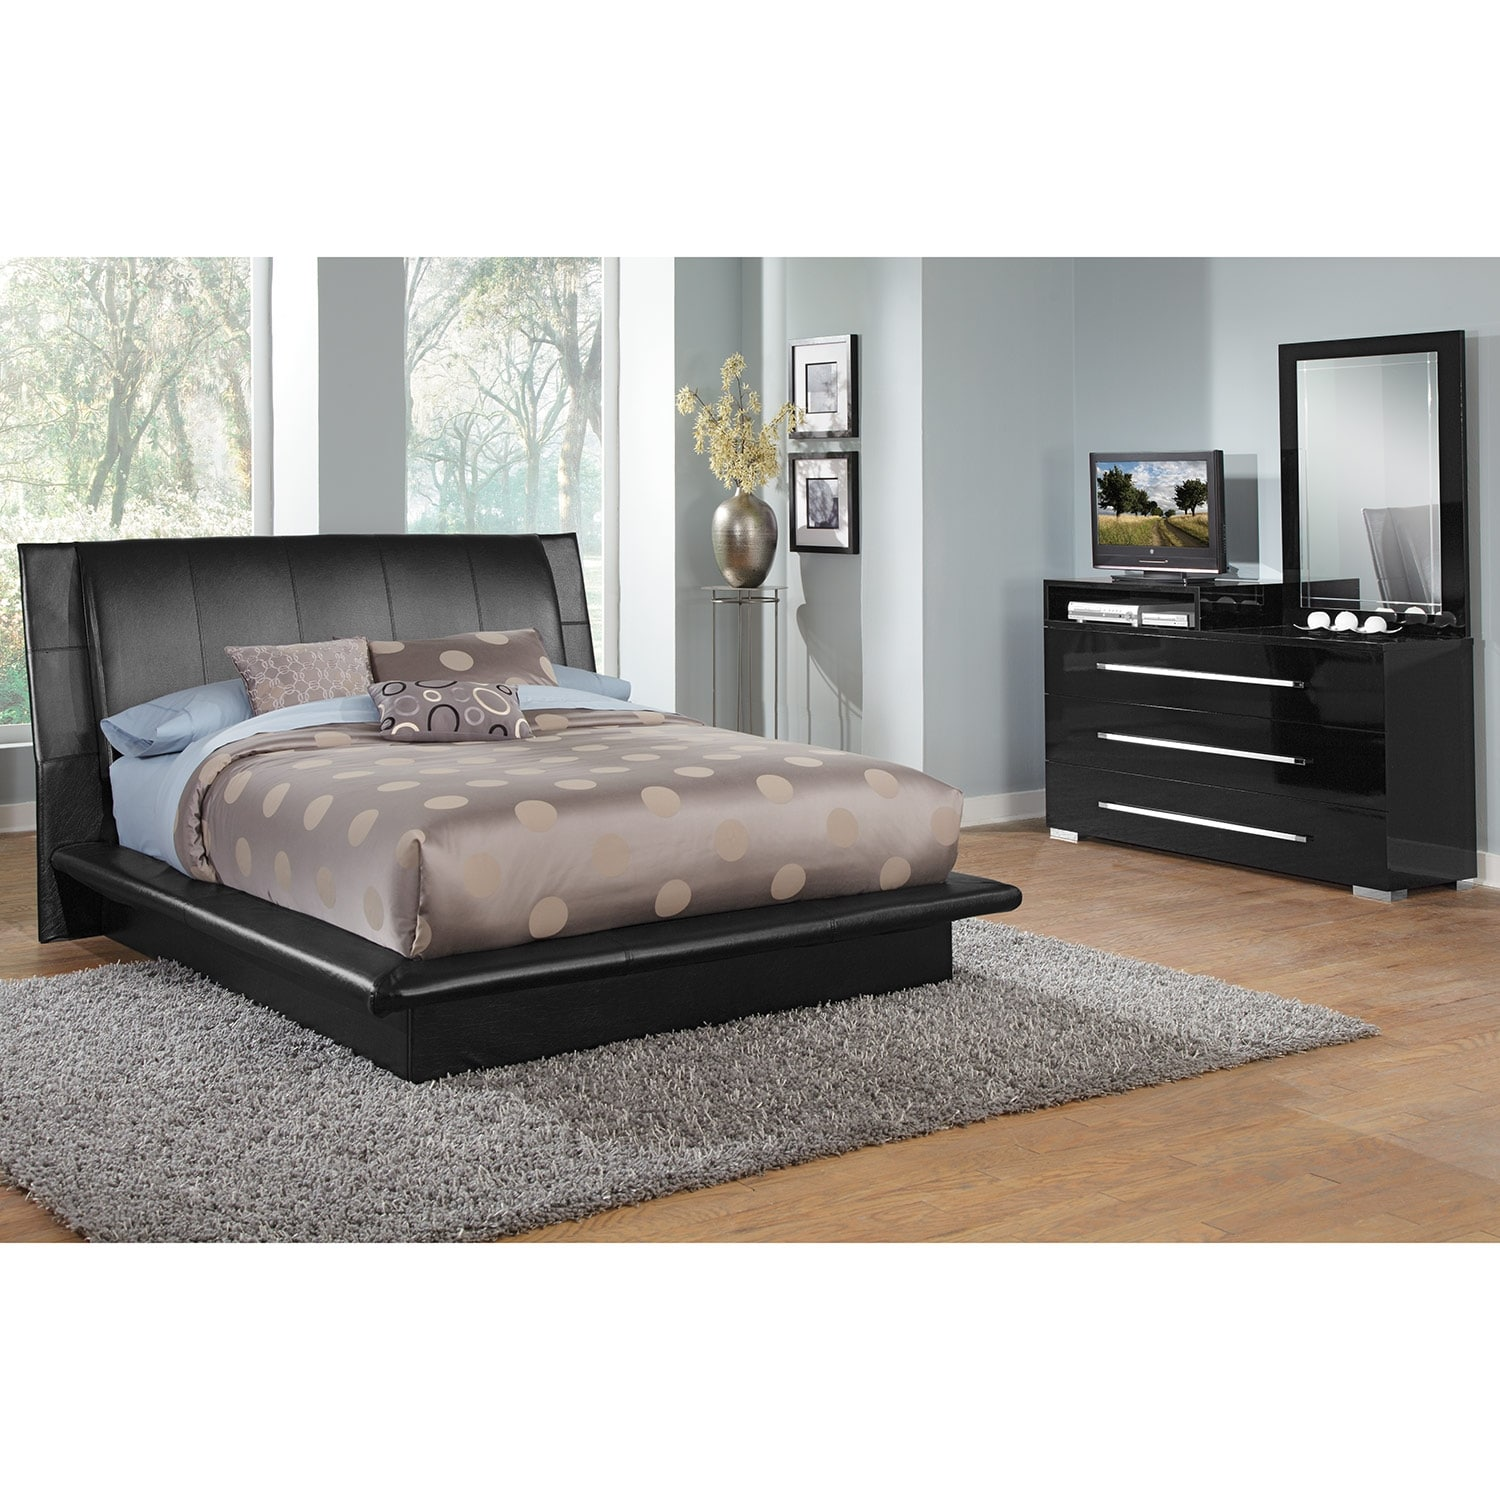 Dimora Black 5 Pc. King Bedroom